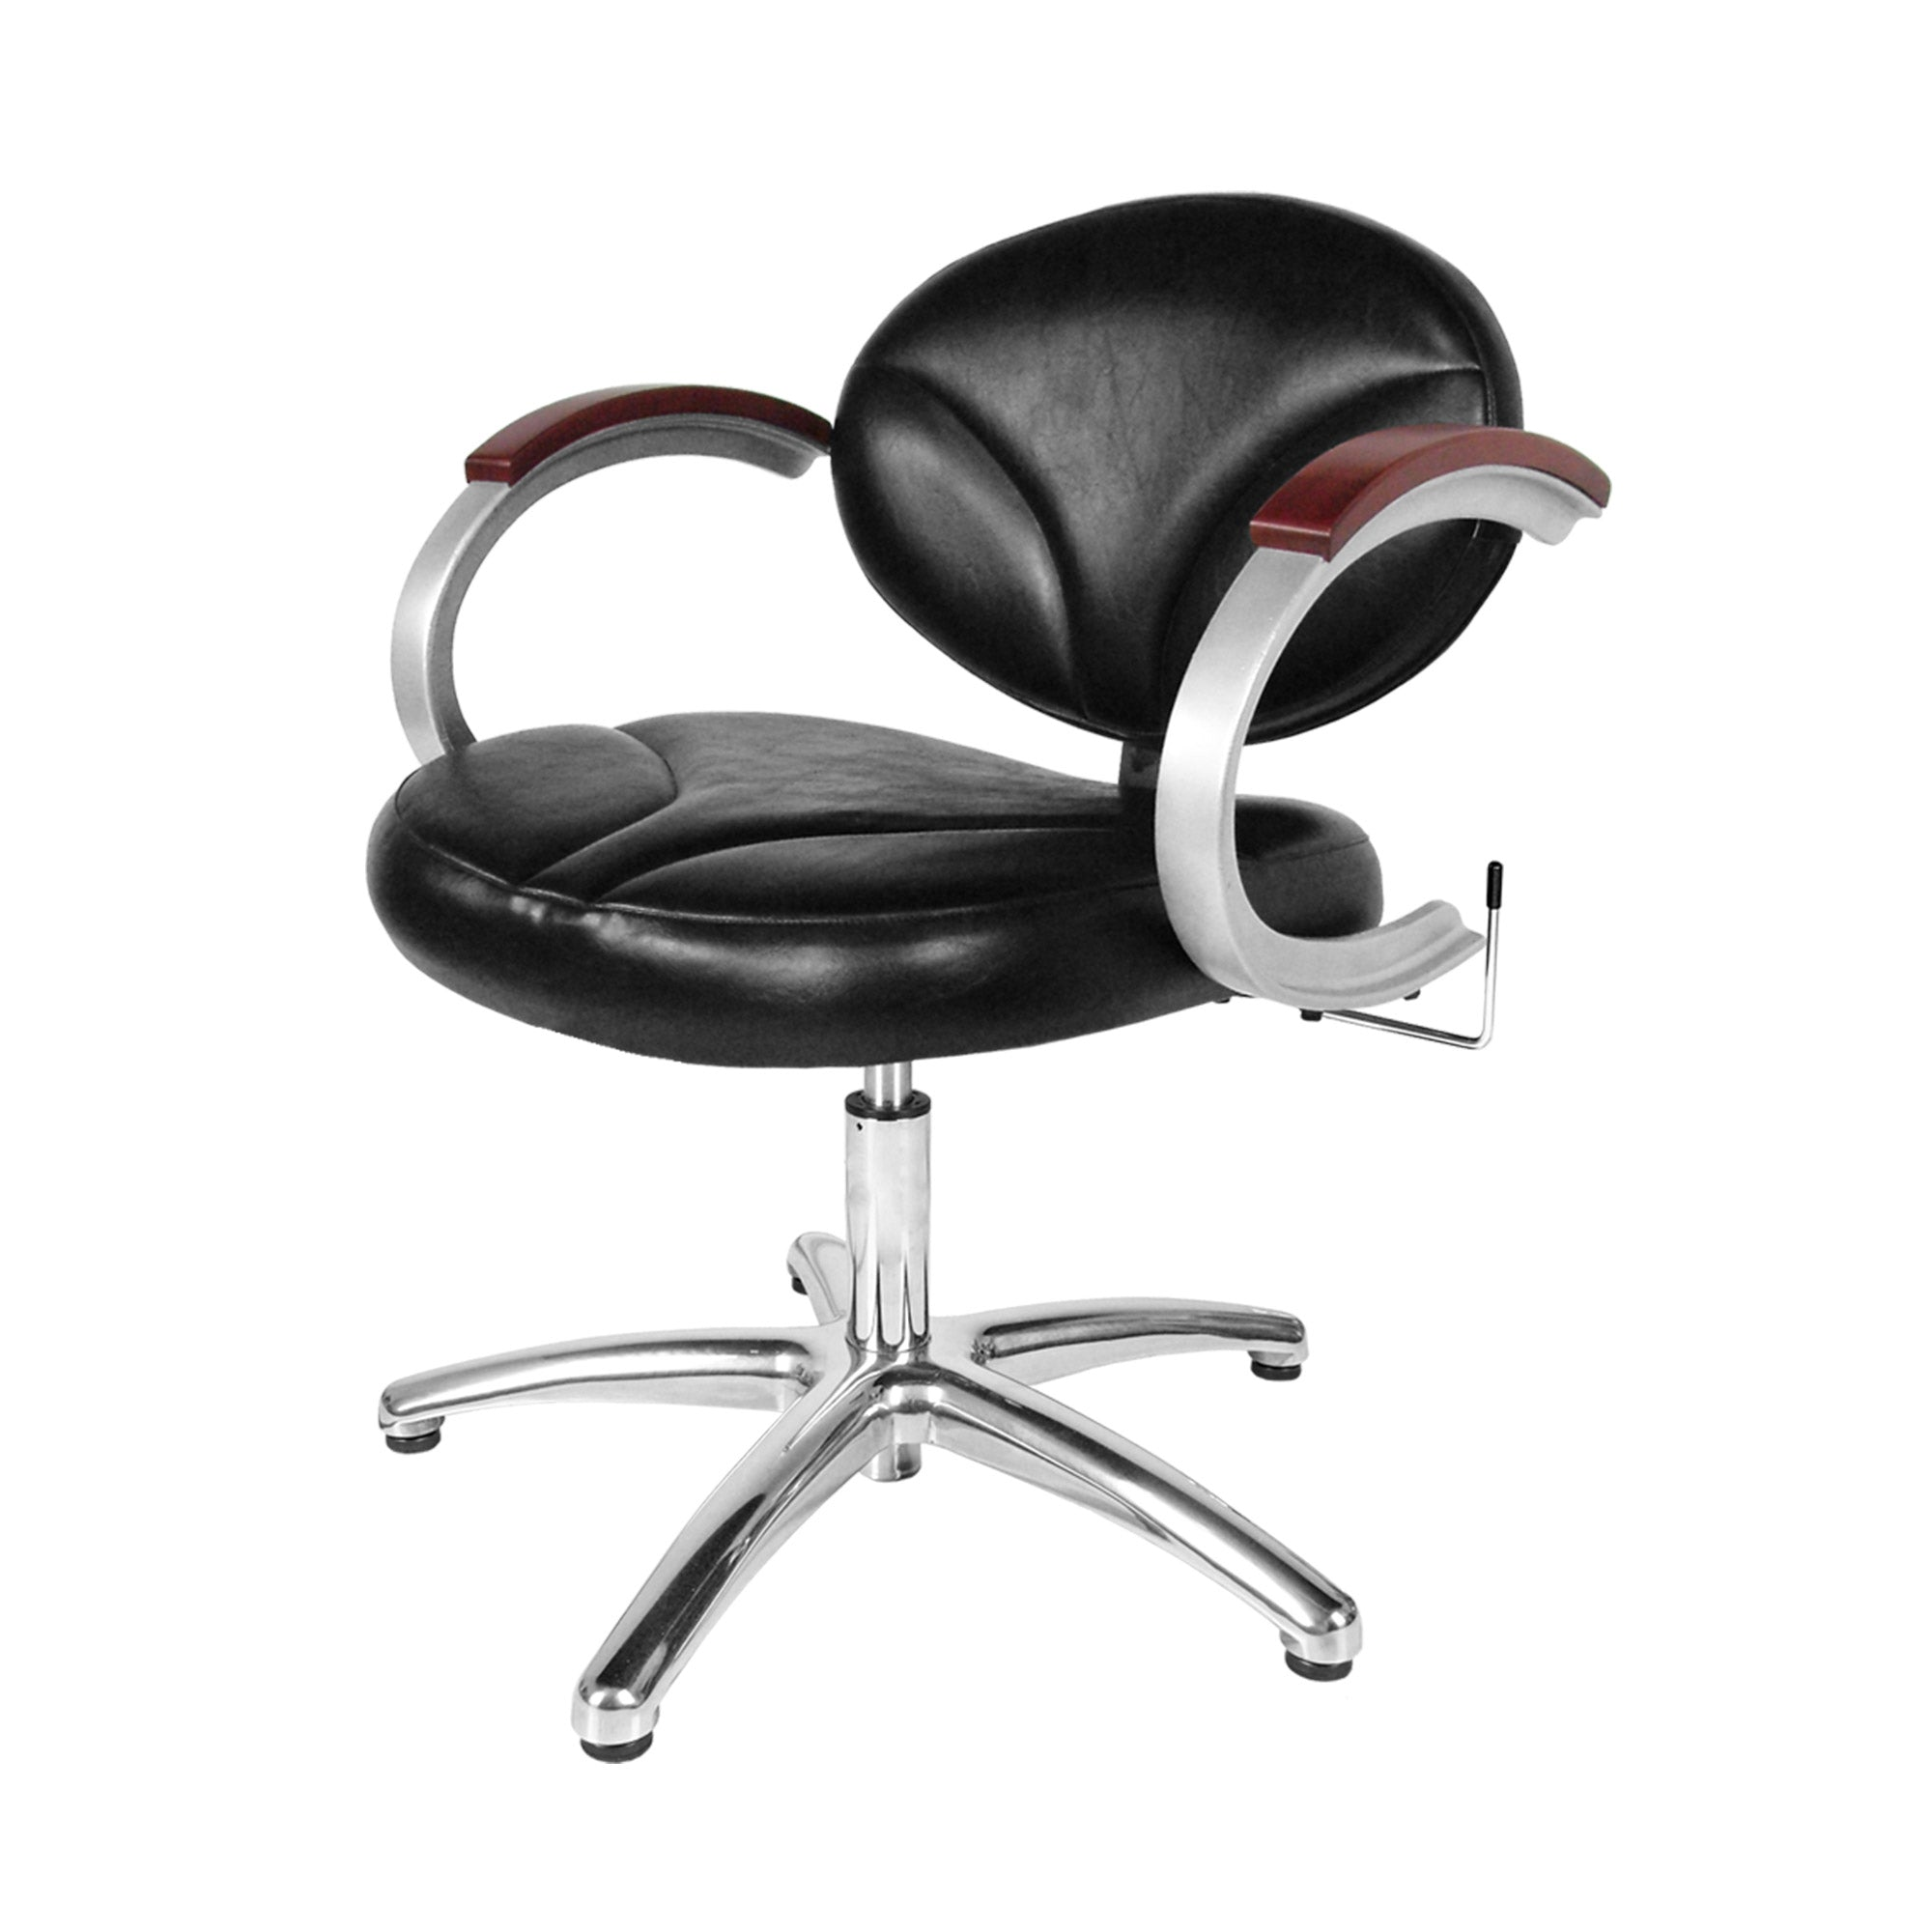 Silhouette Lever-Control Shampoo Chair - Collins